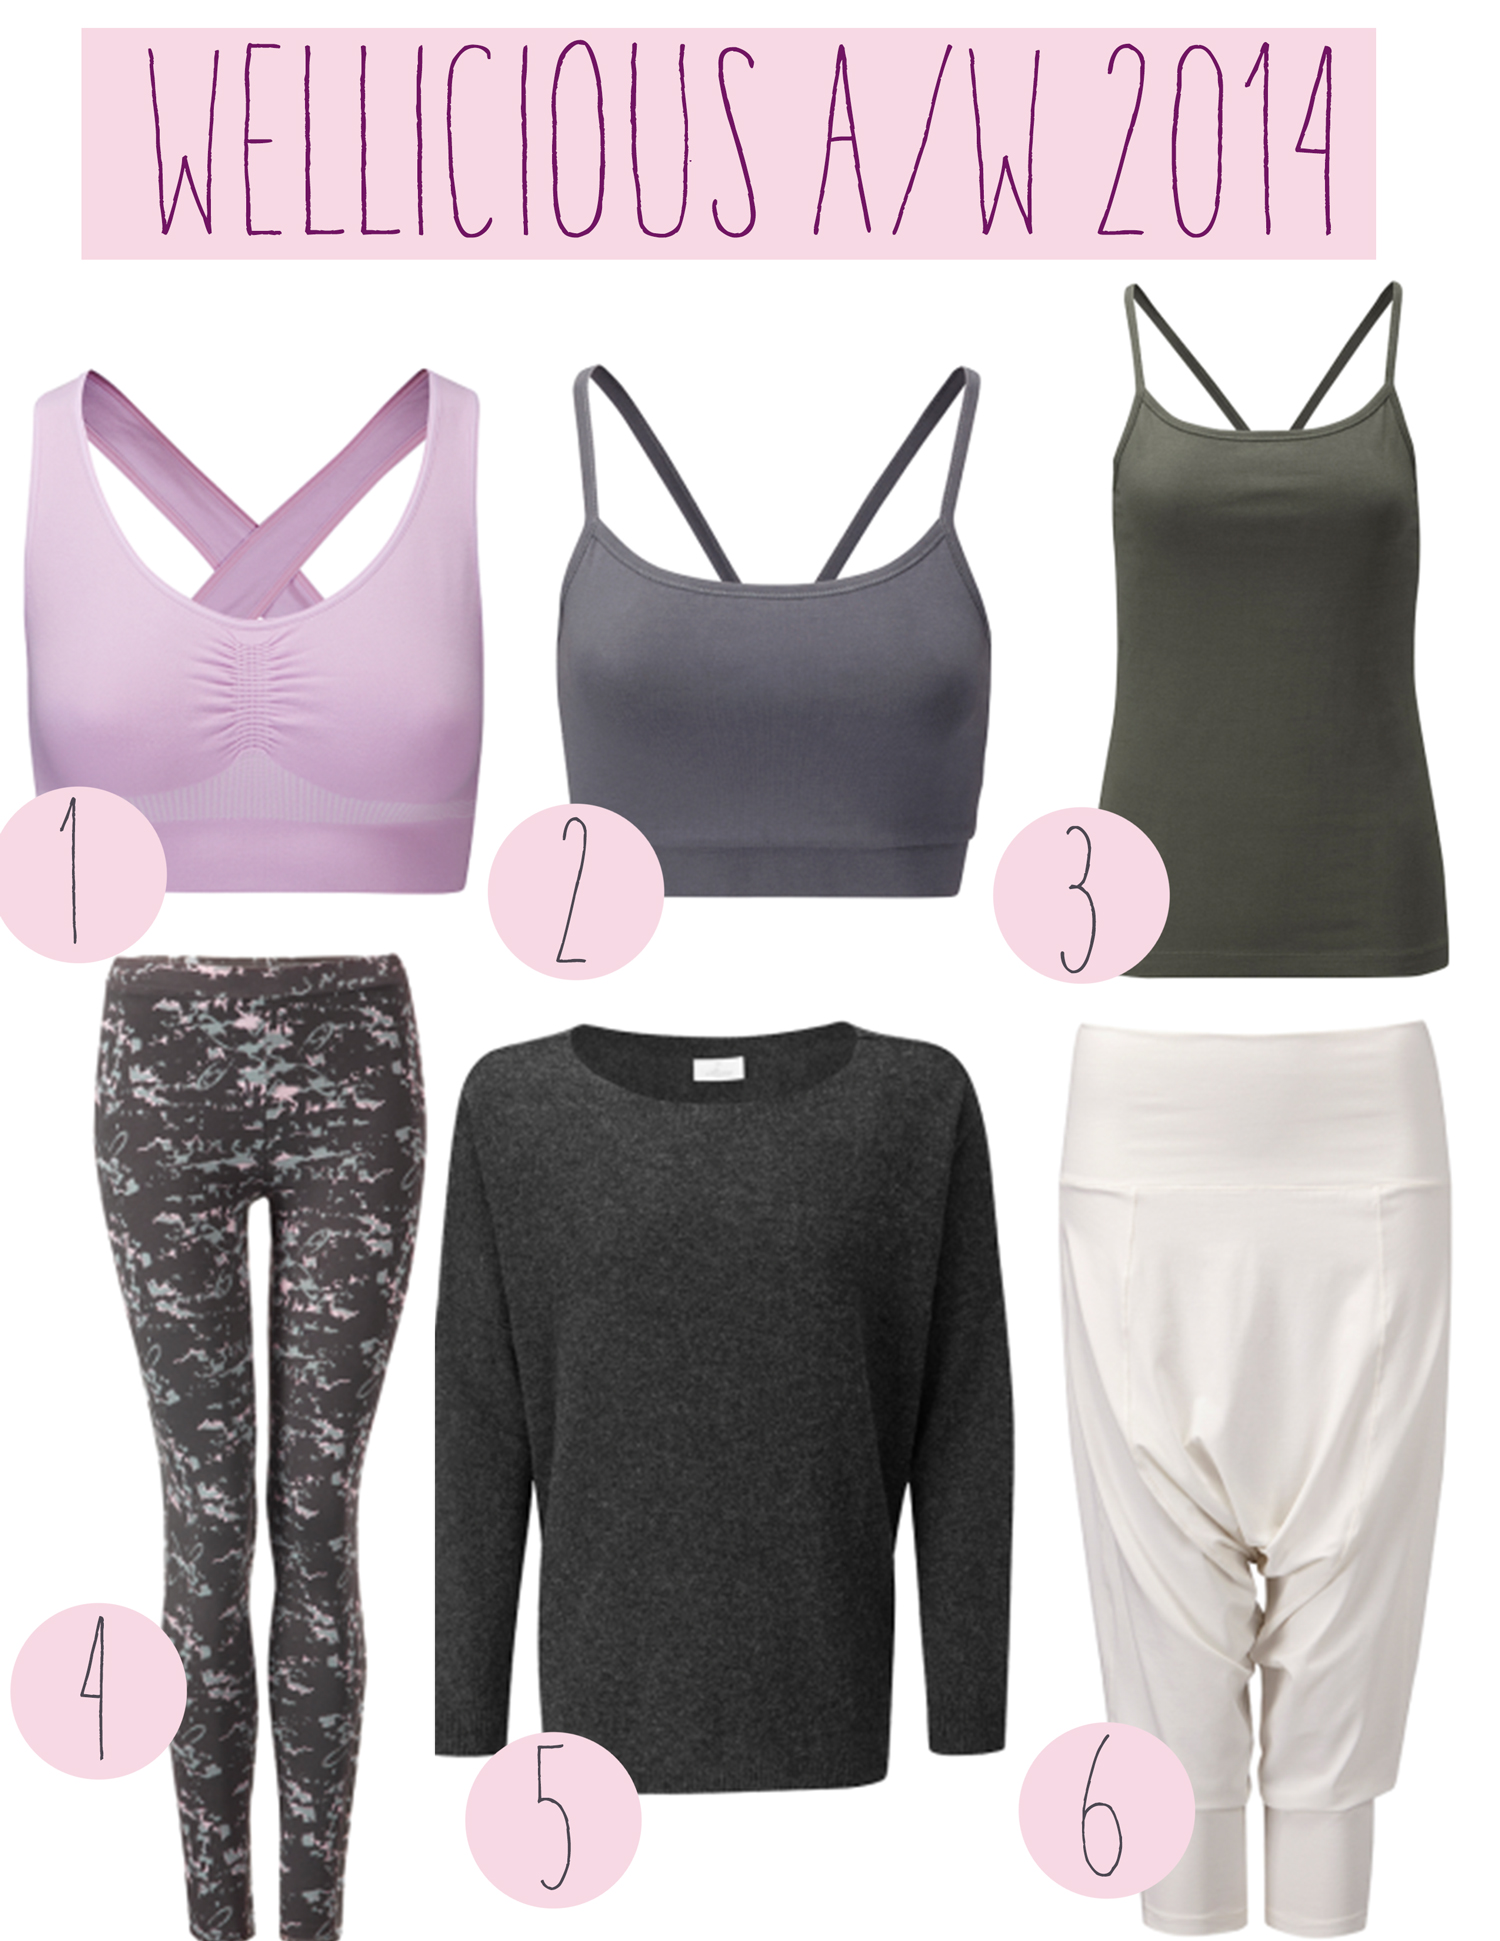 A yoga brand you should know about